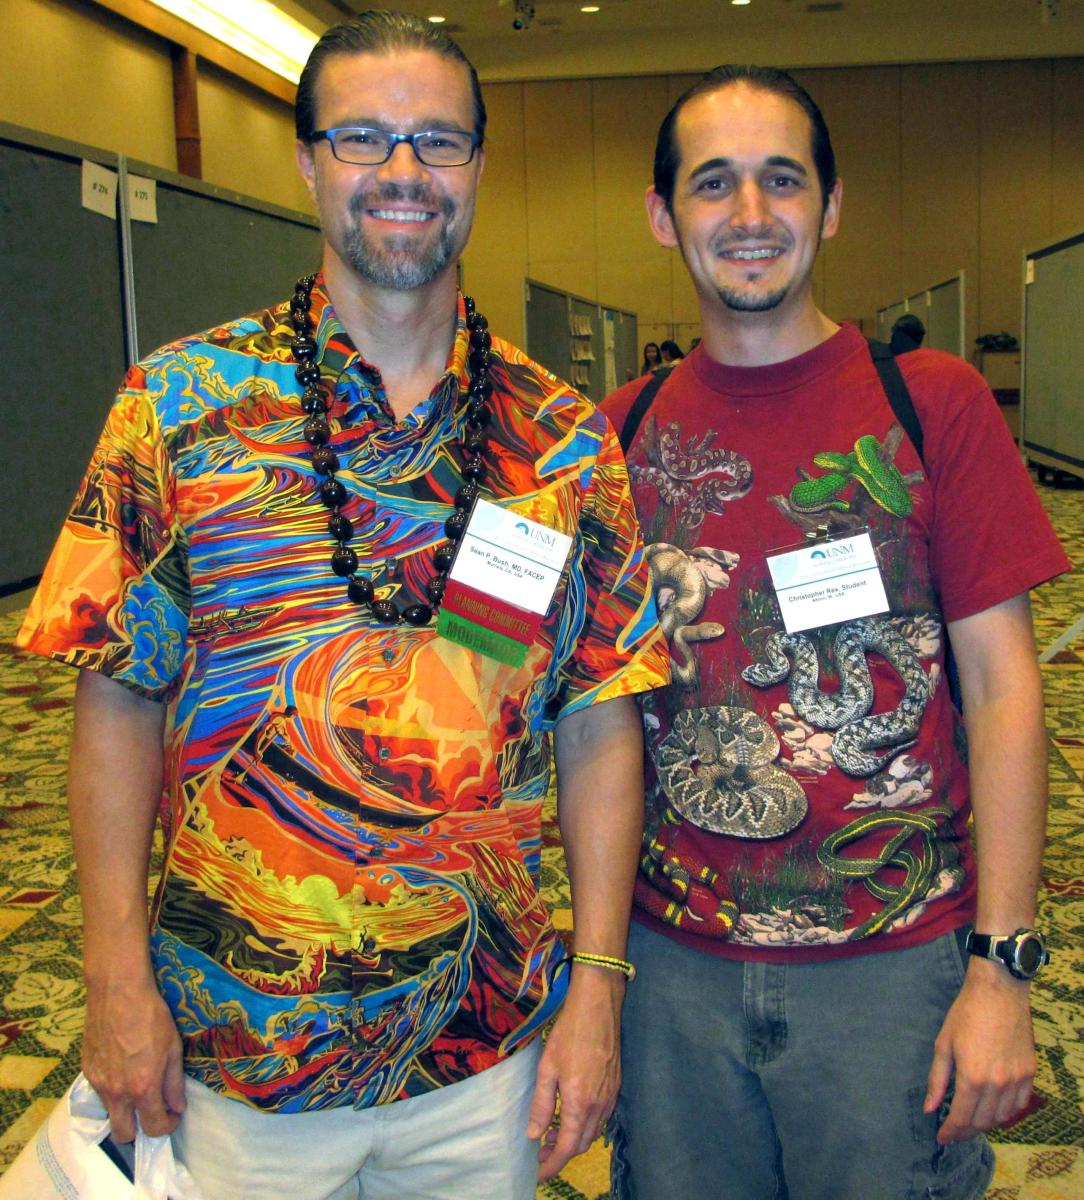 That's me on the right with Dr. Sean Bush (of Animal Planet's Venom ER), one of the leading doctors on snakebite in the United States.  You can find his paper on what to do for snakebite in the references section at the bottom of this article.